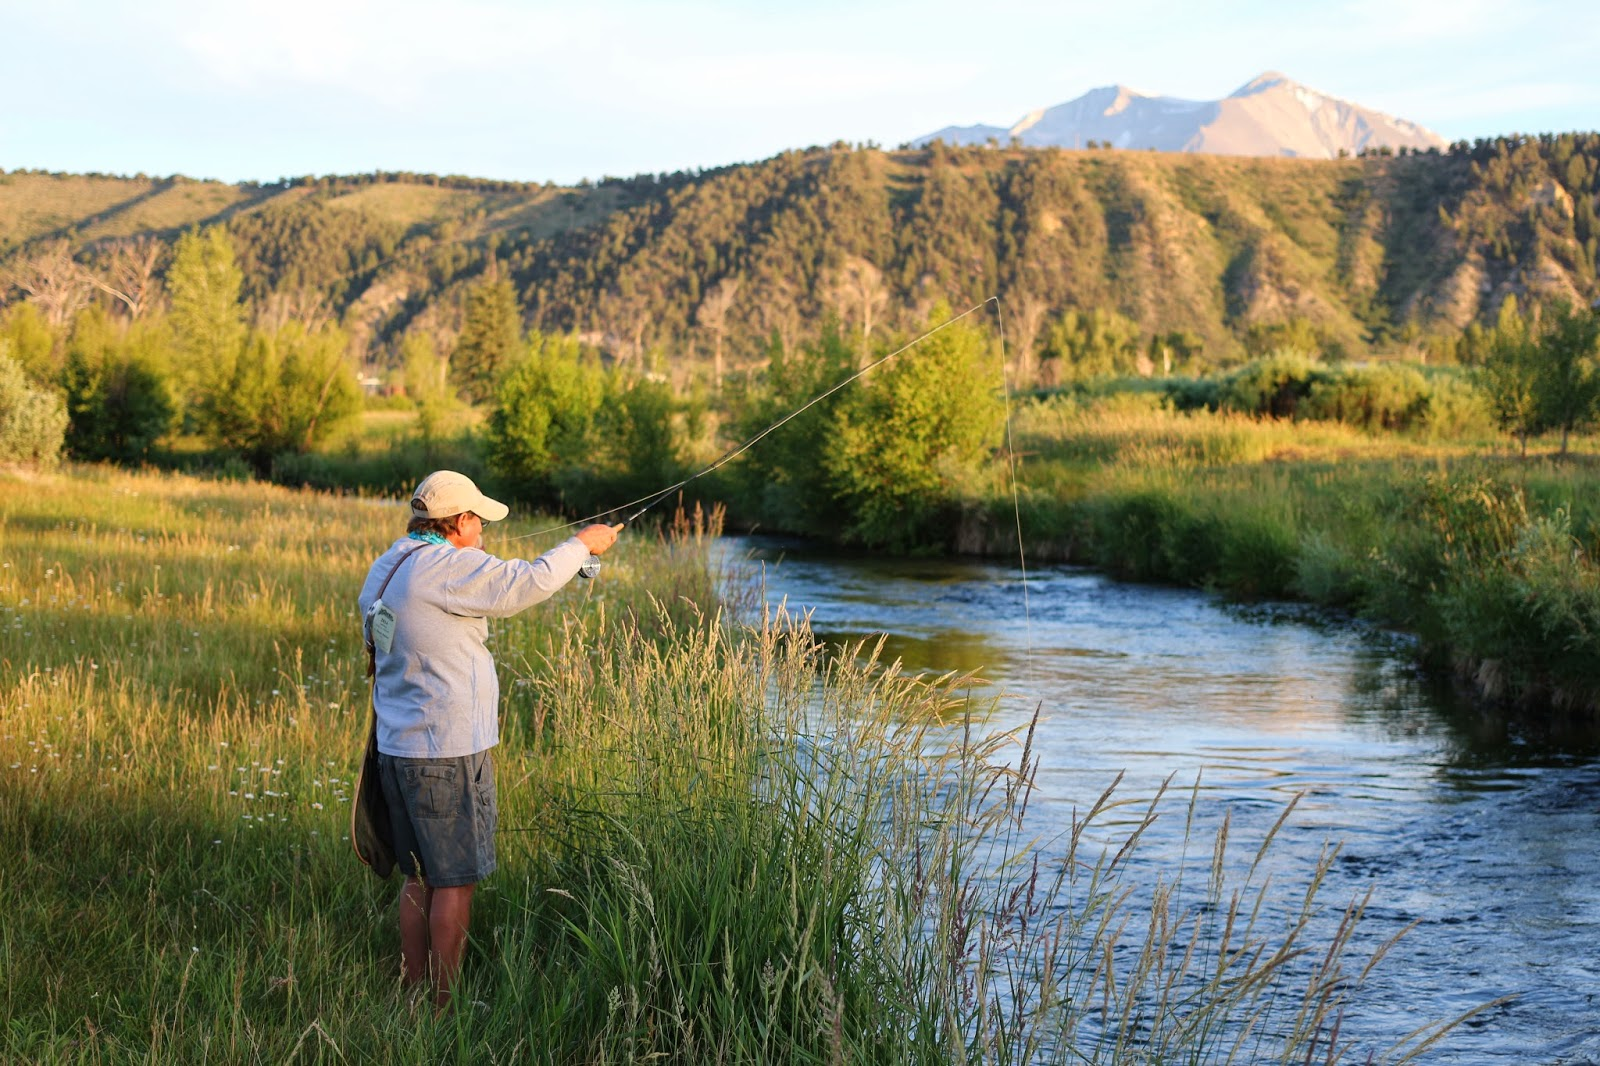 Roaring+fork+river+fly+fishing+with+Jay+Scott+Outdoors+23.JPG